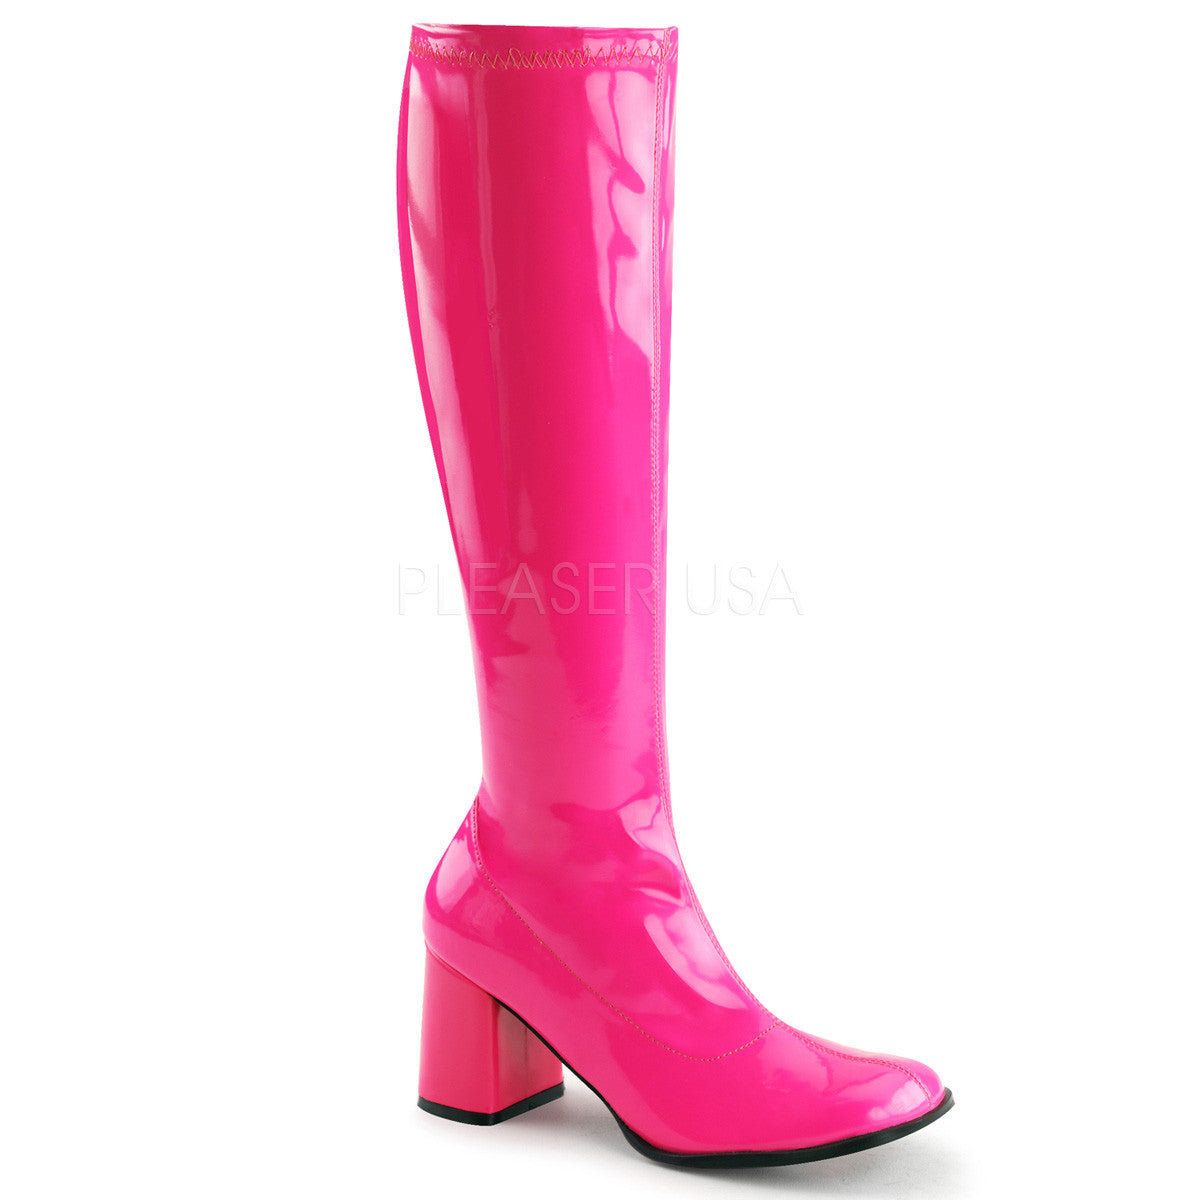 49e5fe2e0eb FUNTASMA GOGO-300UV Neon Hot Pink Stretch Pat Knee high Gogo Boots